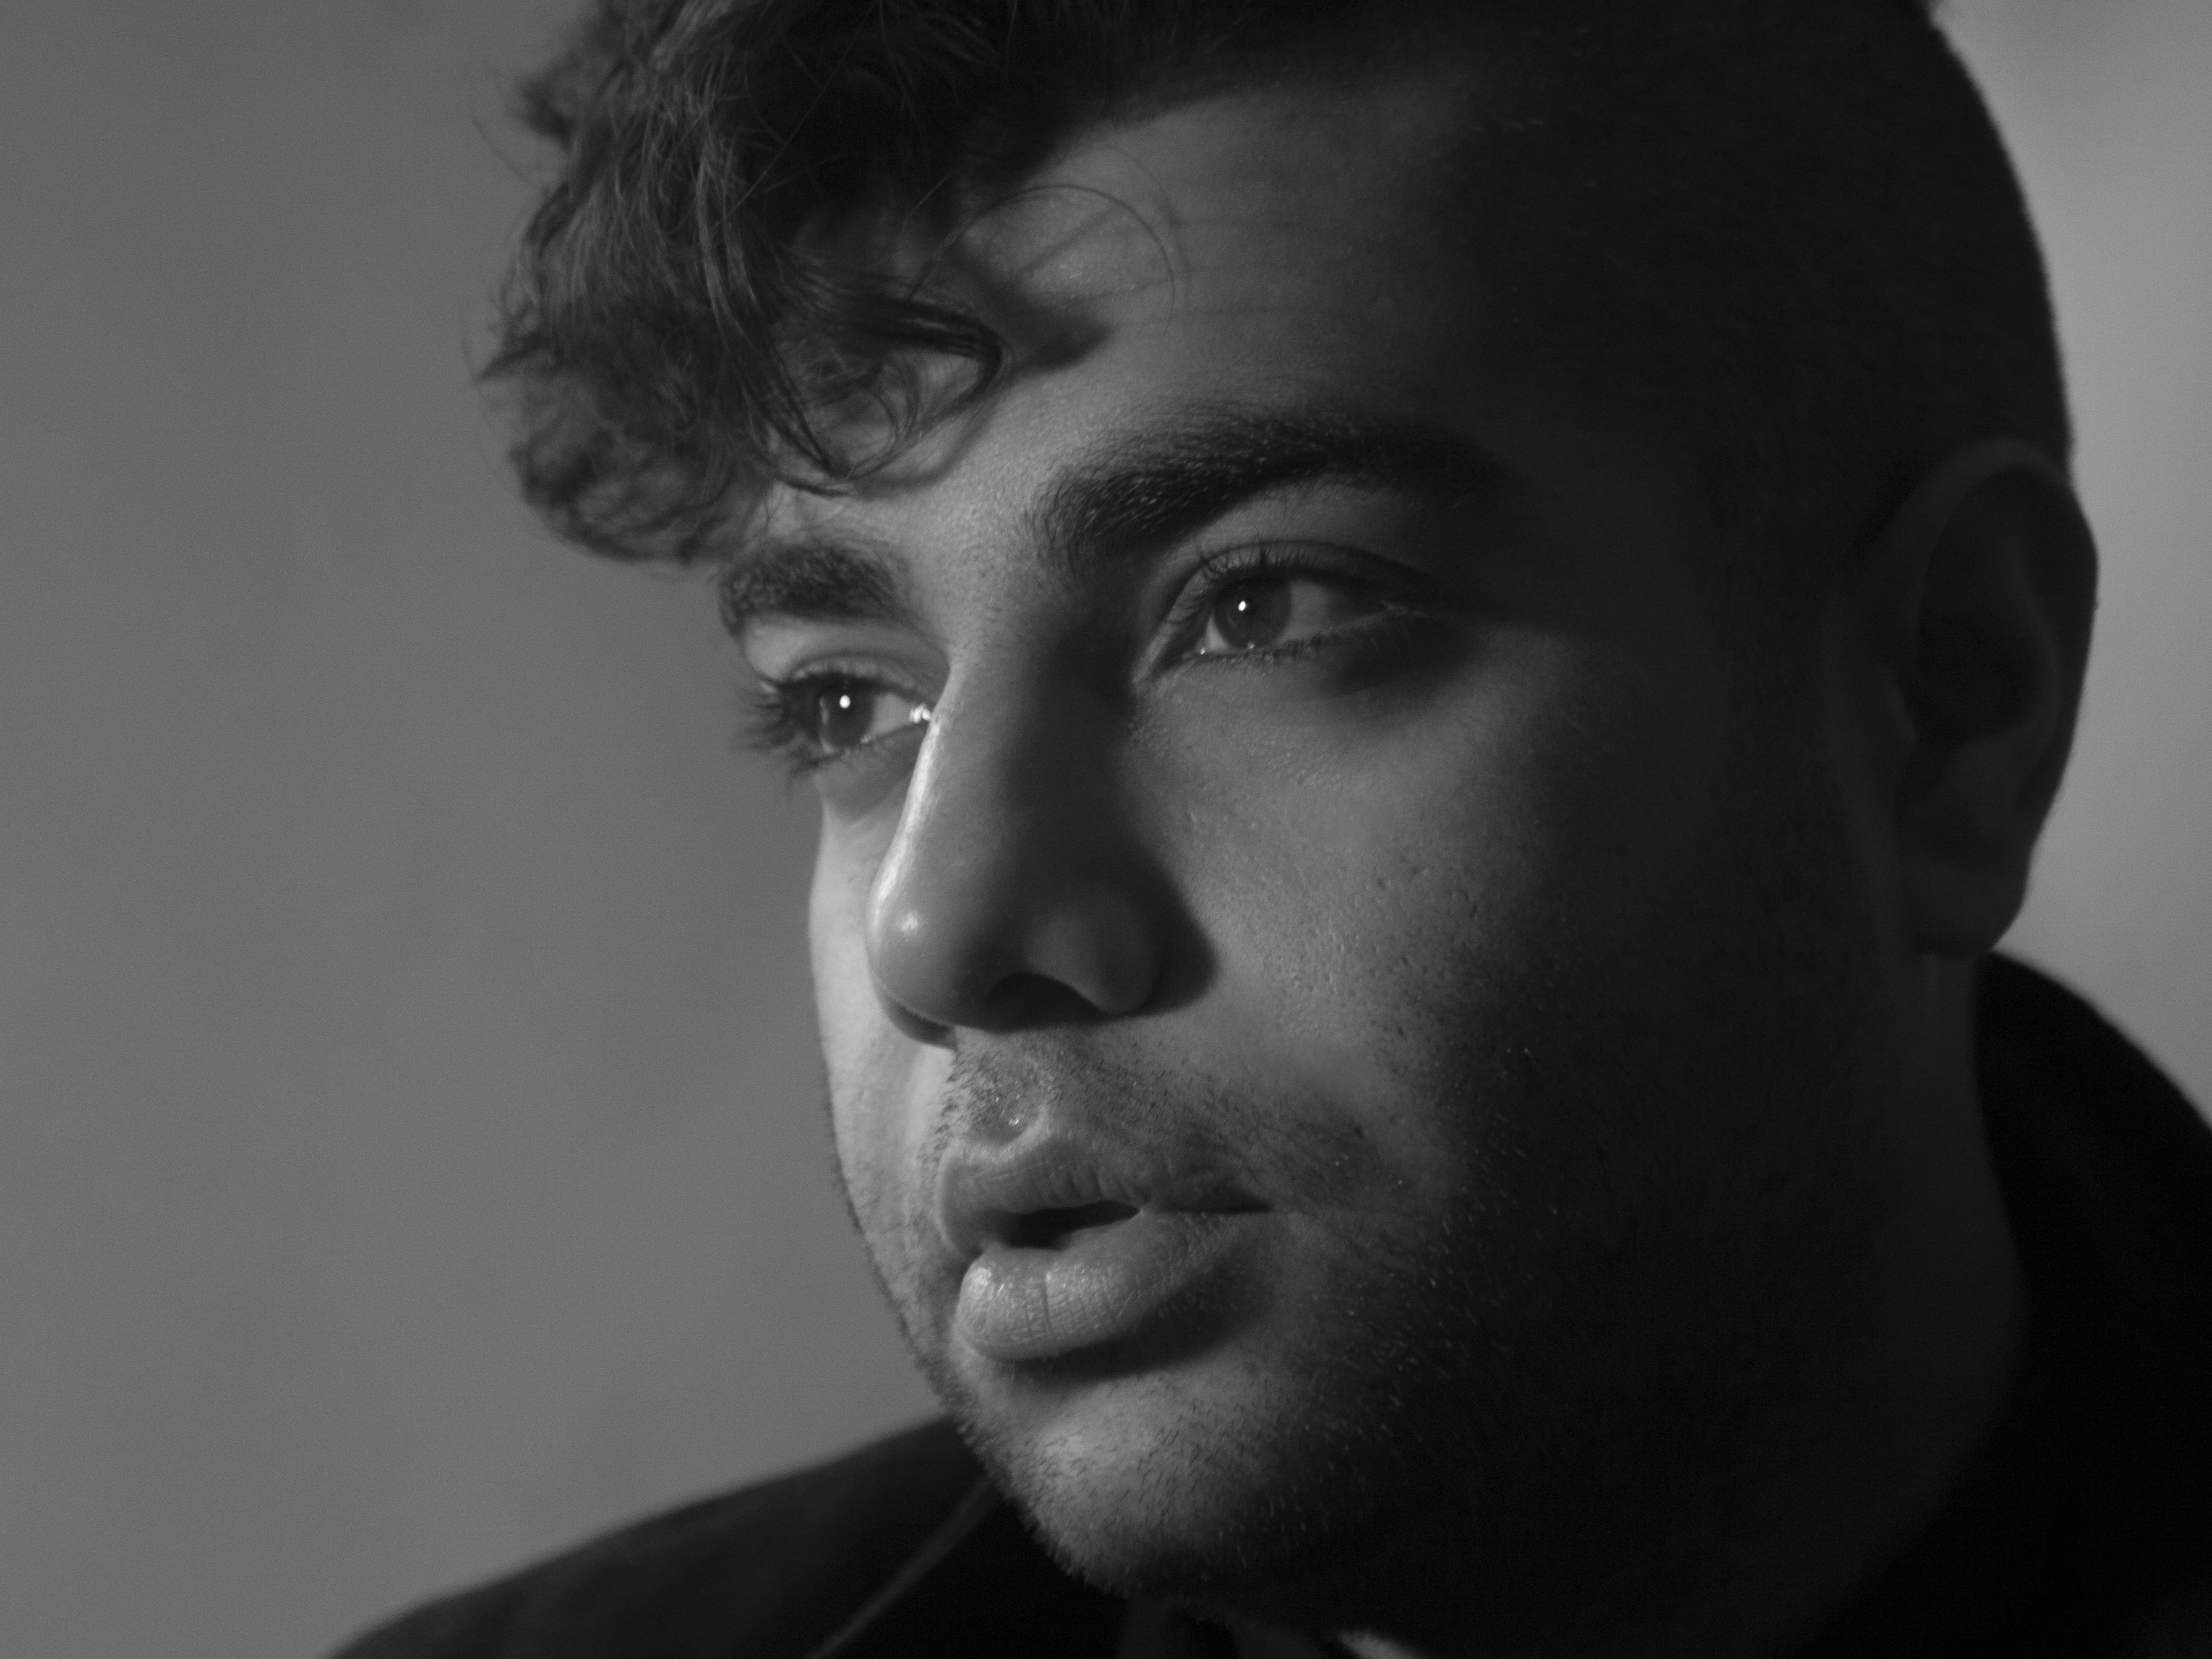 'We Knew Things Were Different For Us': Heems On Rap, Race And Identity